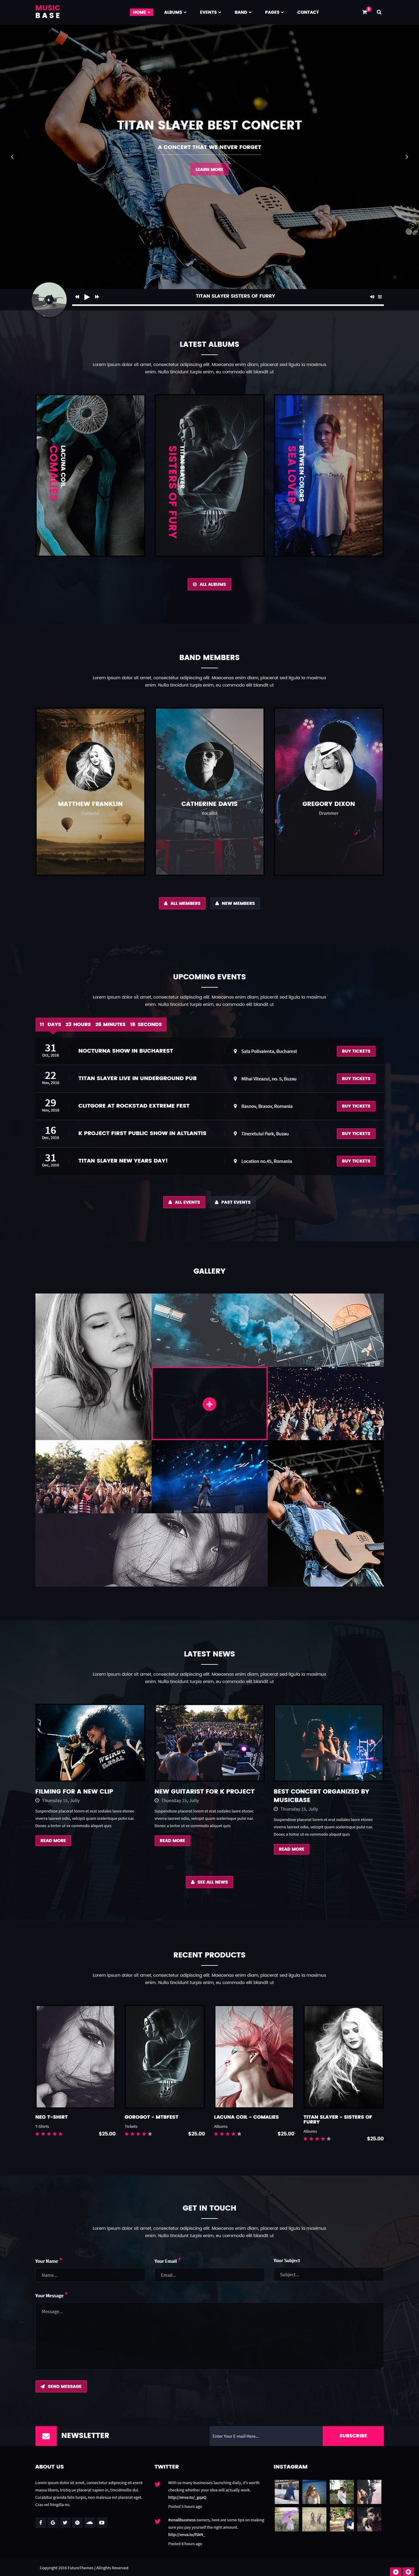 Musicbase is an ideal choice for customers who want to design an amazing music website. It offers a modern and clean design that never fails to impress. This template can be used to improve any web page.--- Check it out now! | Just $19.    https://themeforest.net/item/musicbase-band-artist-radio-html-template/18200280?ref=future-themes